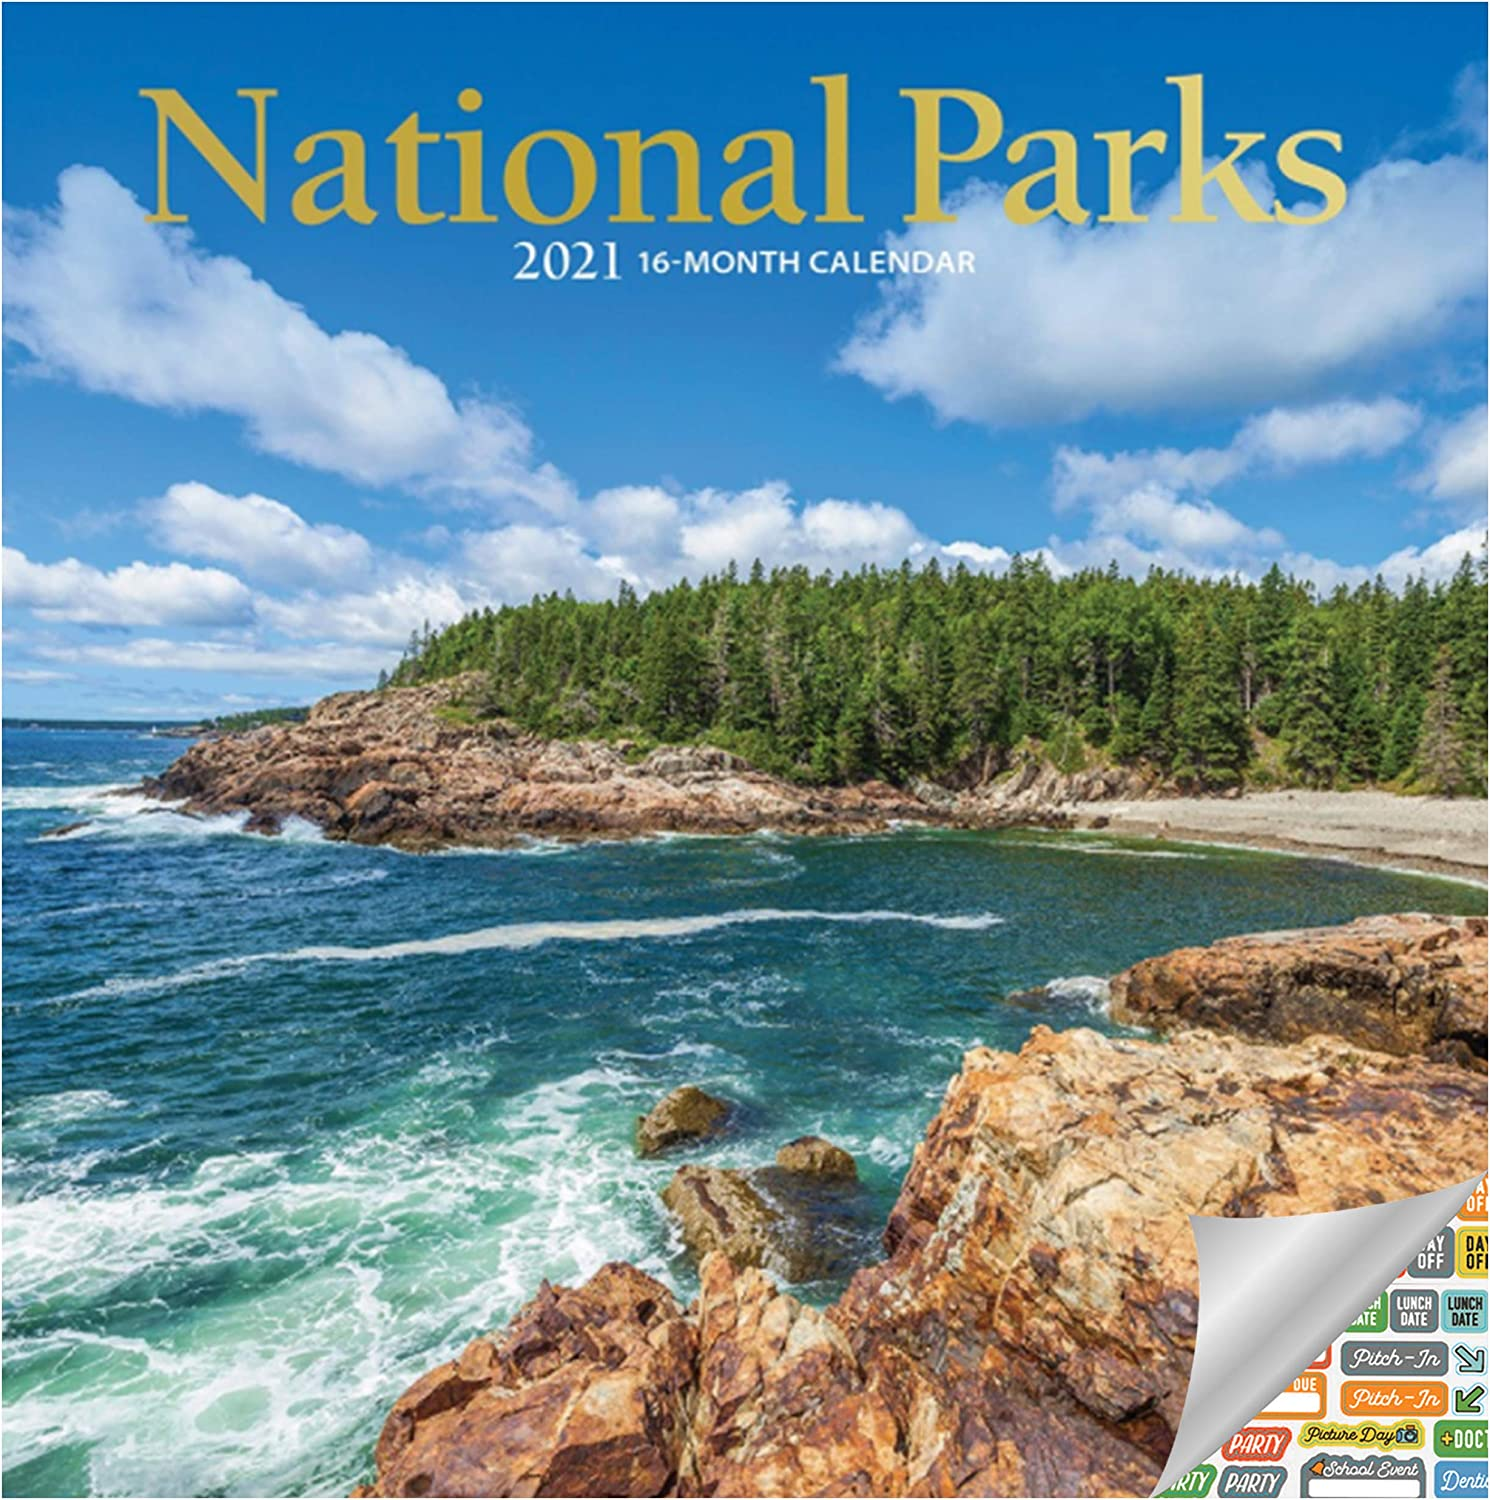 National Parks Calendar 2021 Bundle - Deluxe 2021 National Parks Mini Calendar with Over 100 Calendar Stickers (Nature Gifts, Office Supplies)